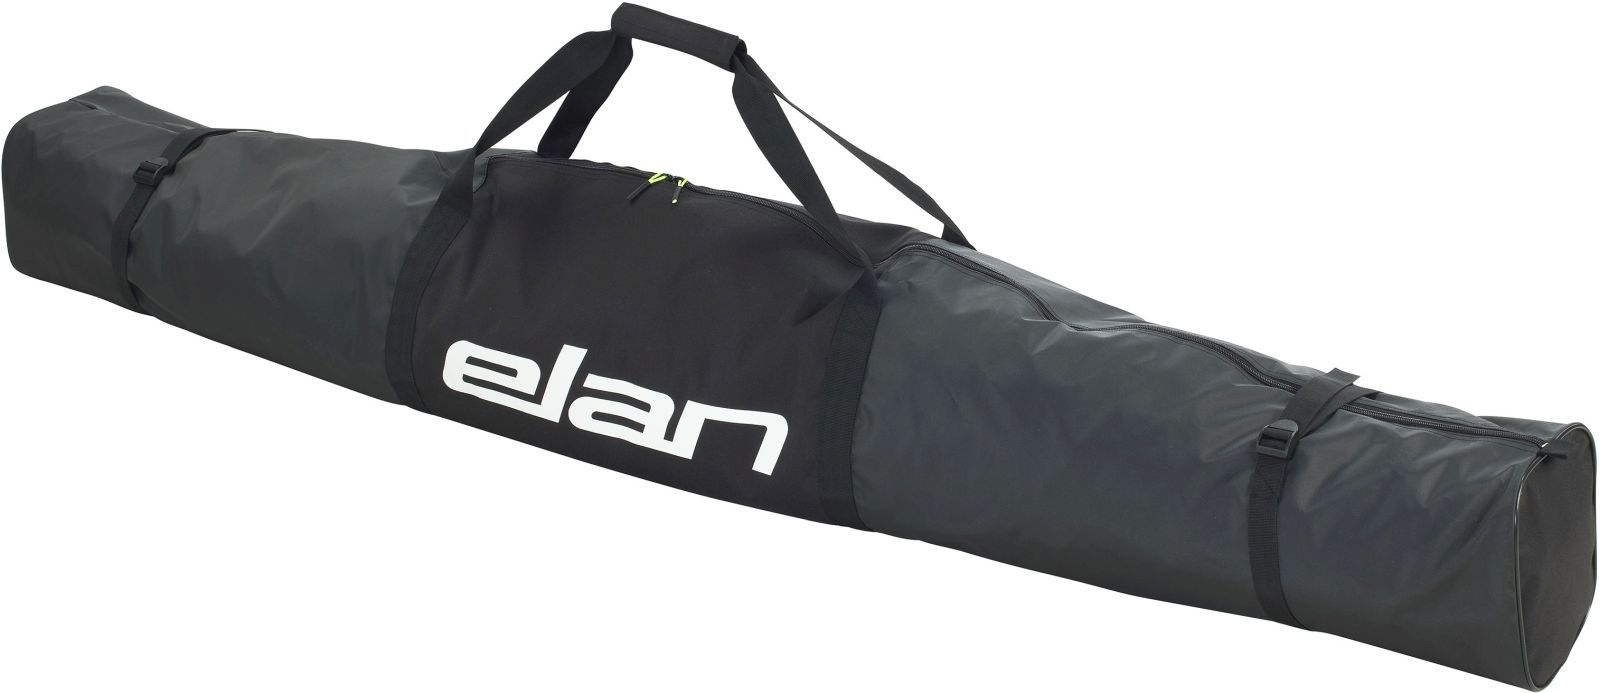 Elan 2 Pair Ski Bag uni